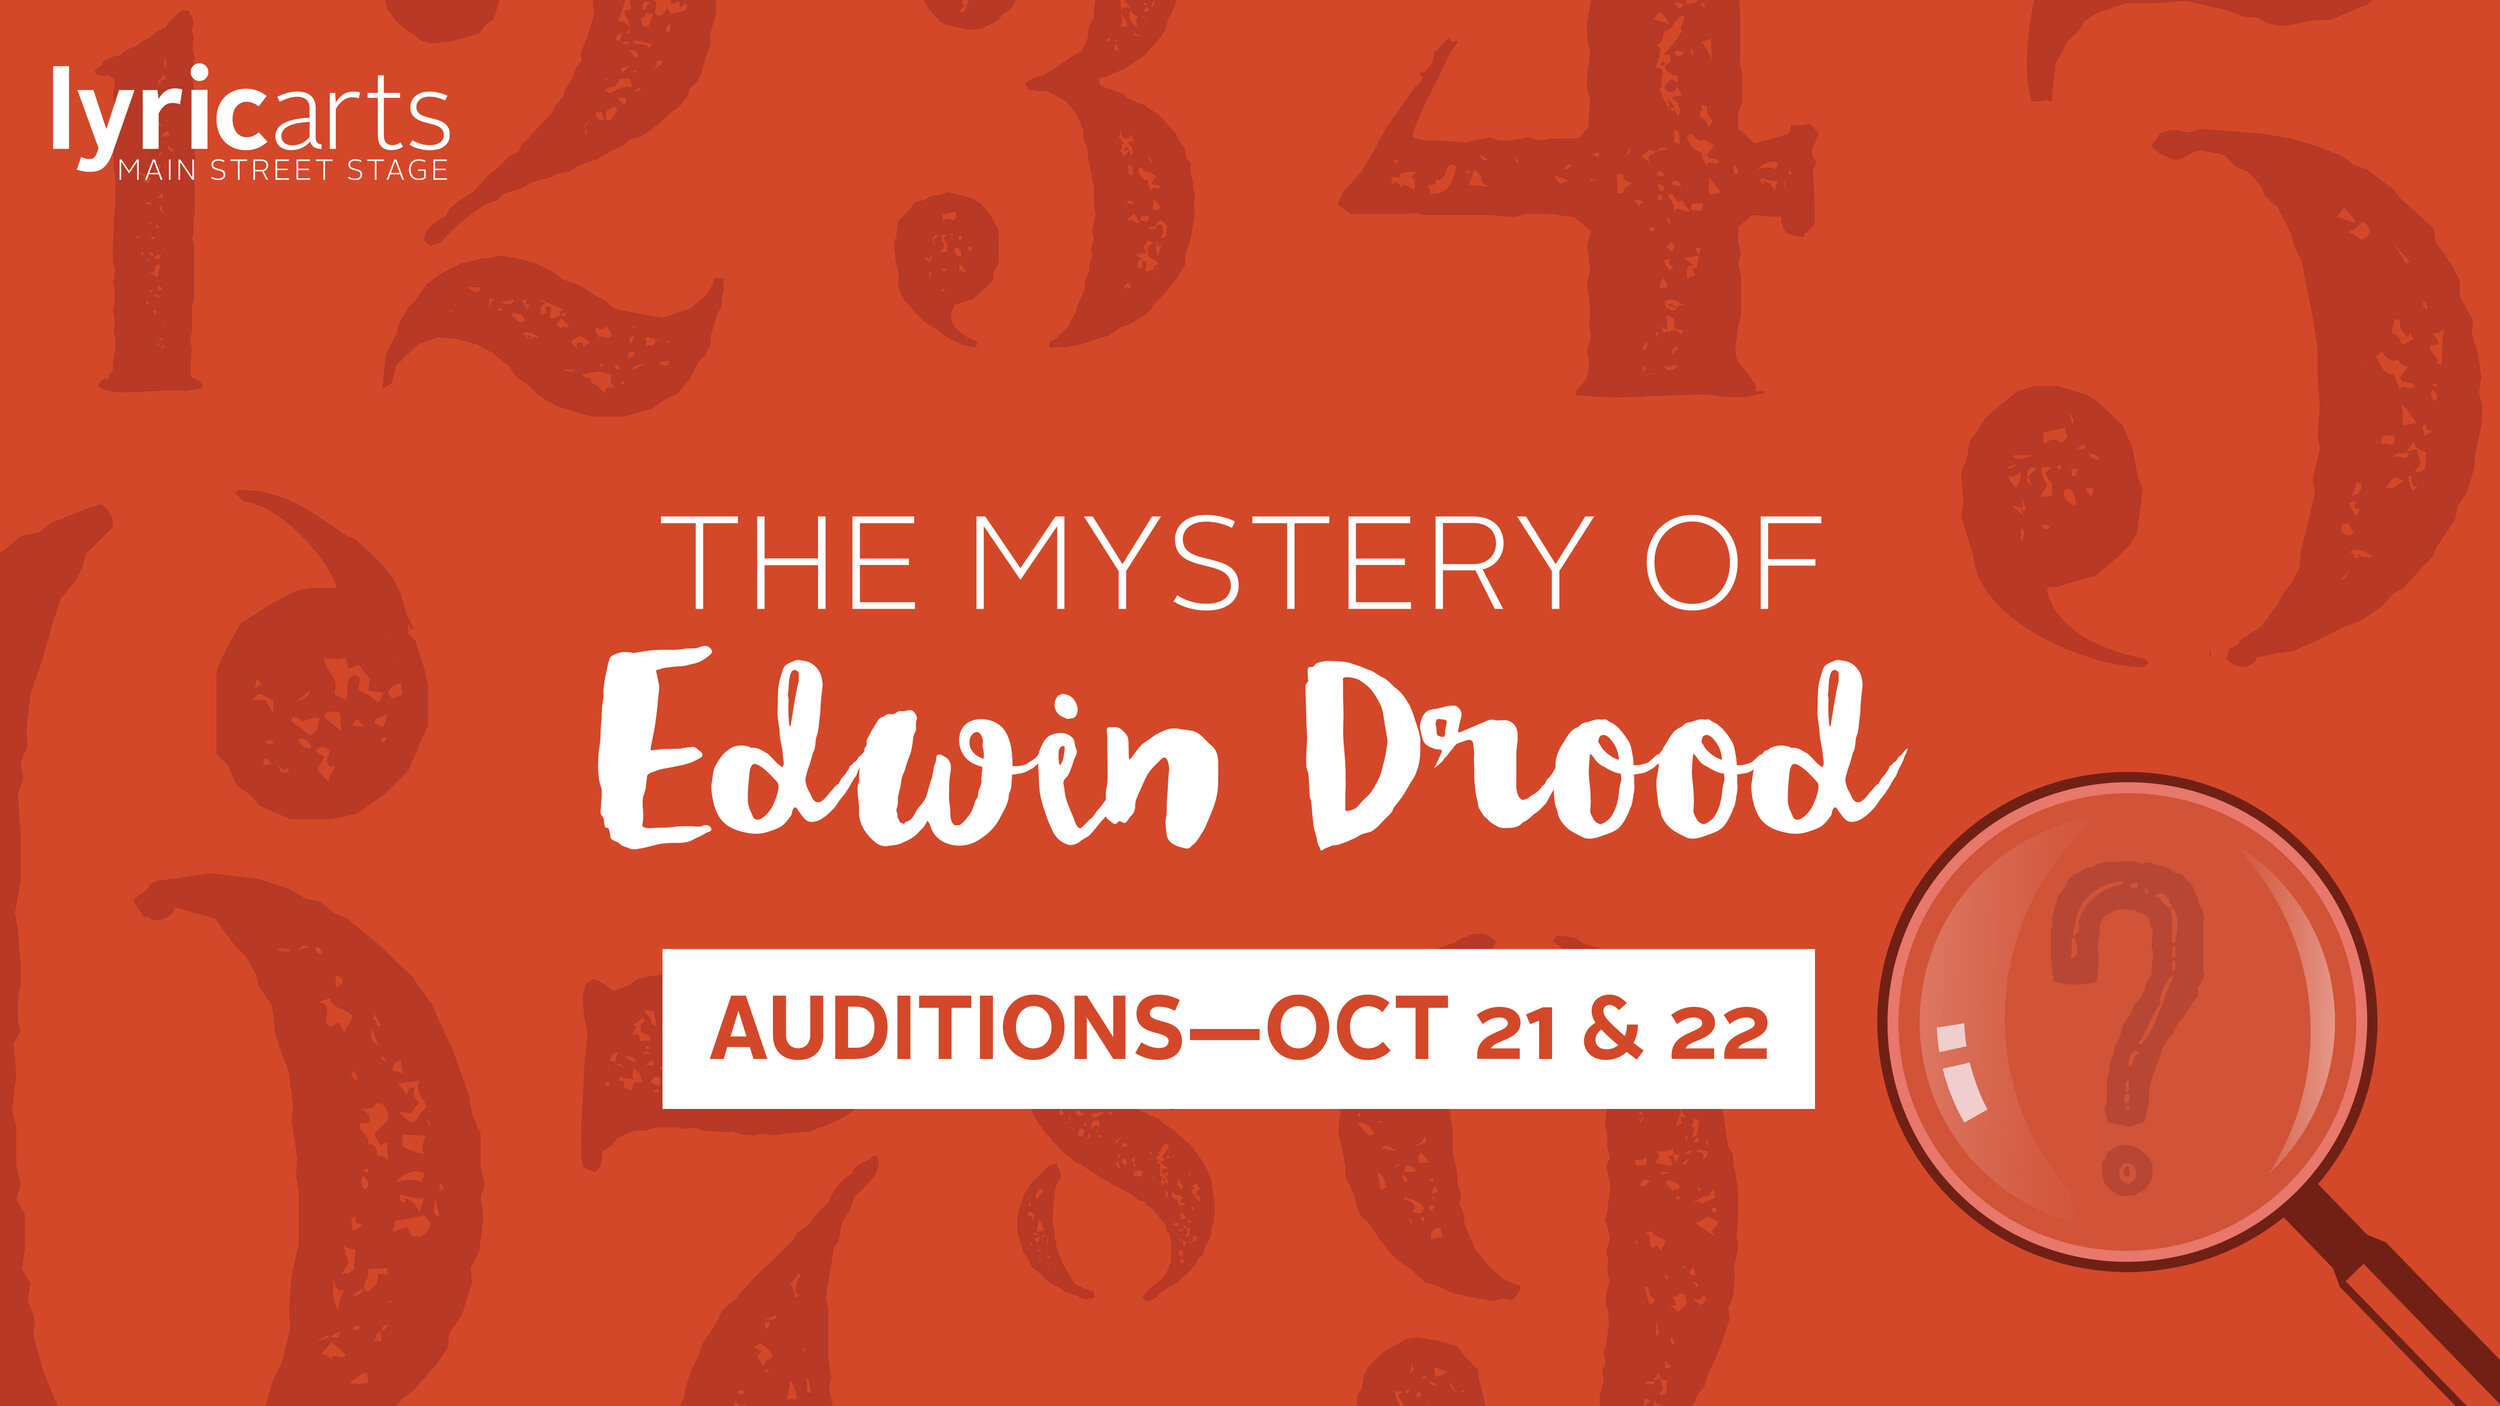 FB Audition Event DROOD.jpg